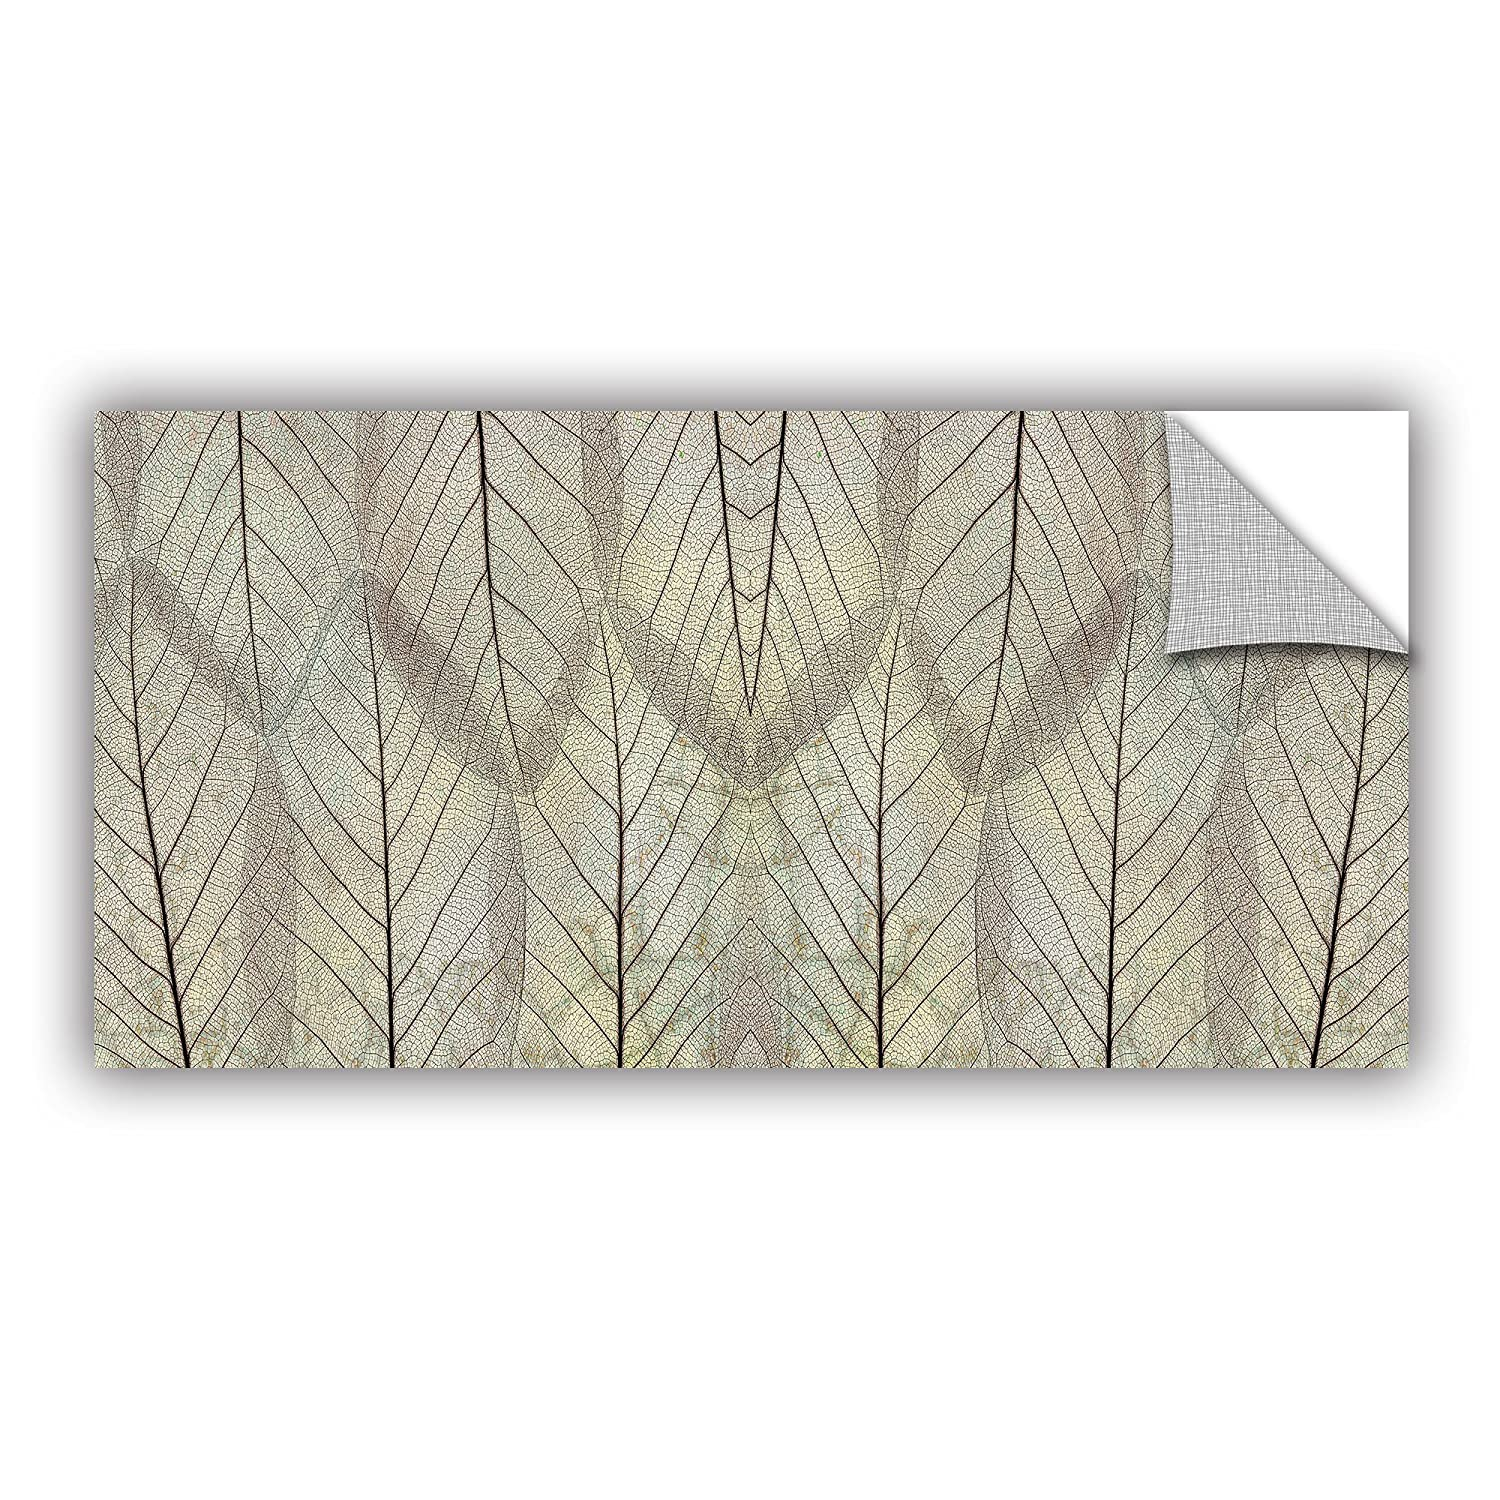 Cream 18 by 36 ArtWall Cora Nieles Leaf Design Appeelz Removable Graphic Wall Art